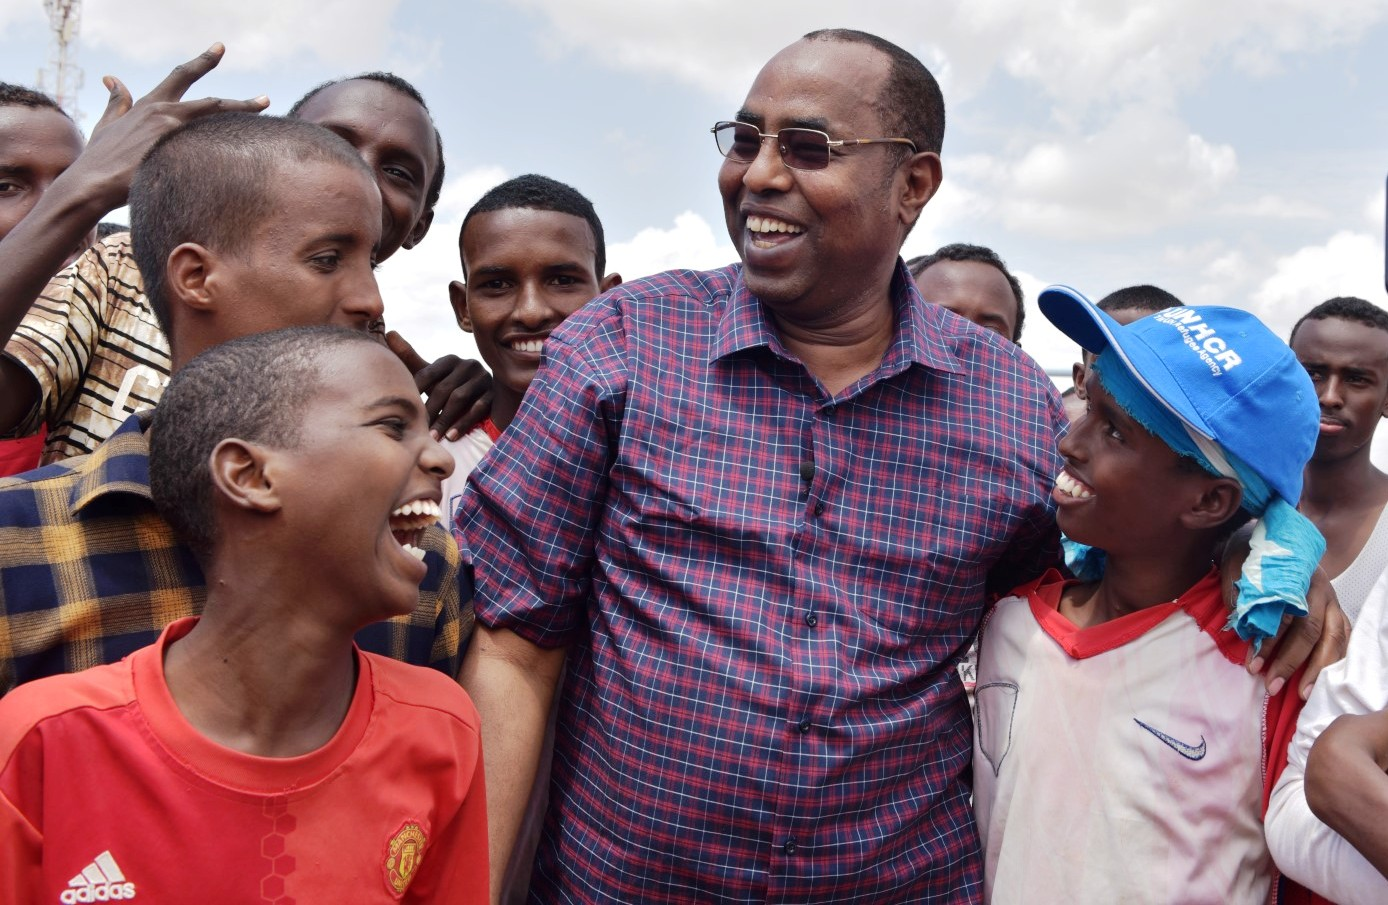 Ambassador Affey chats with refugee children in Ifo camp of Dadaab. © UNHCR/A.Nasrullah